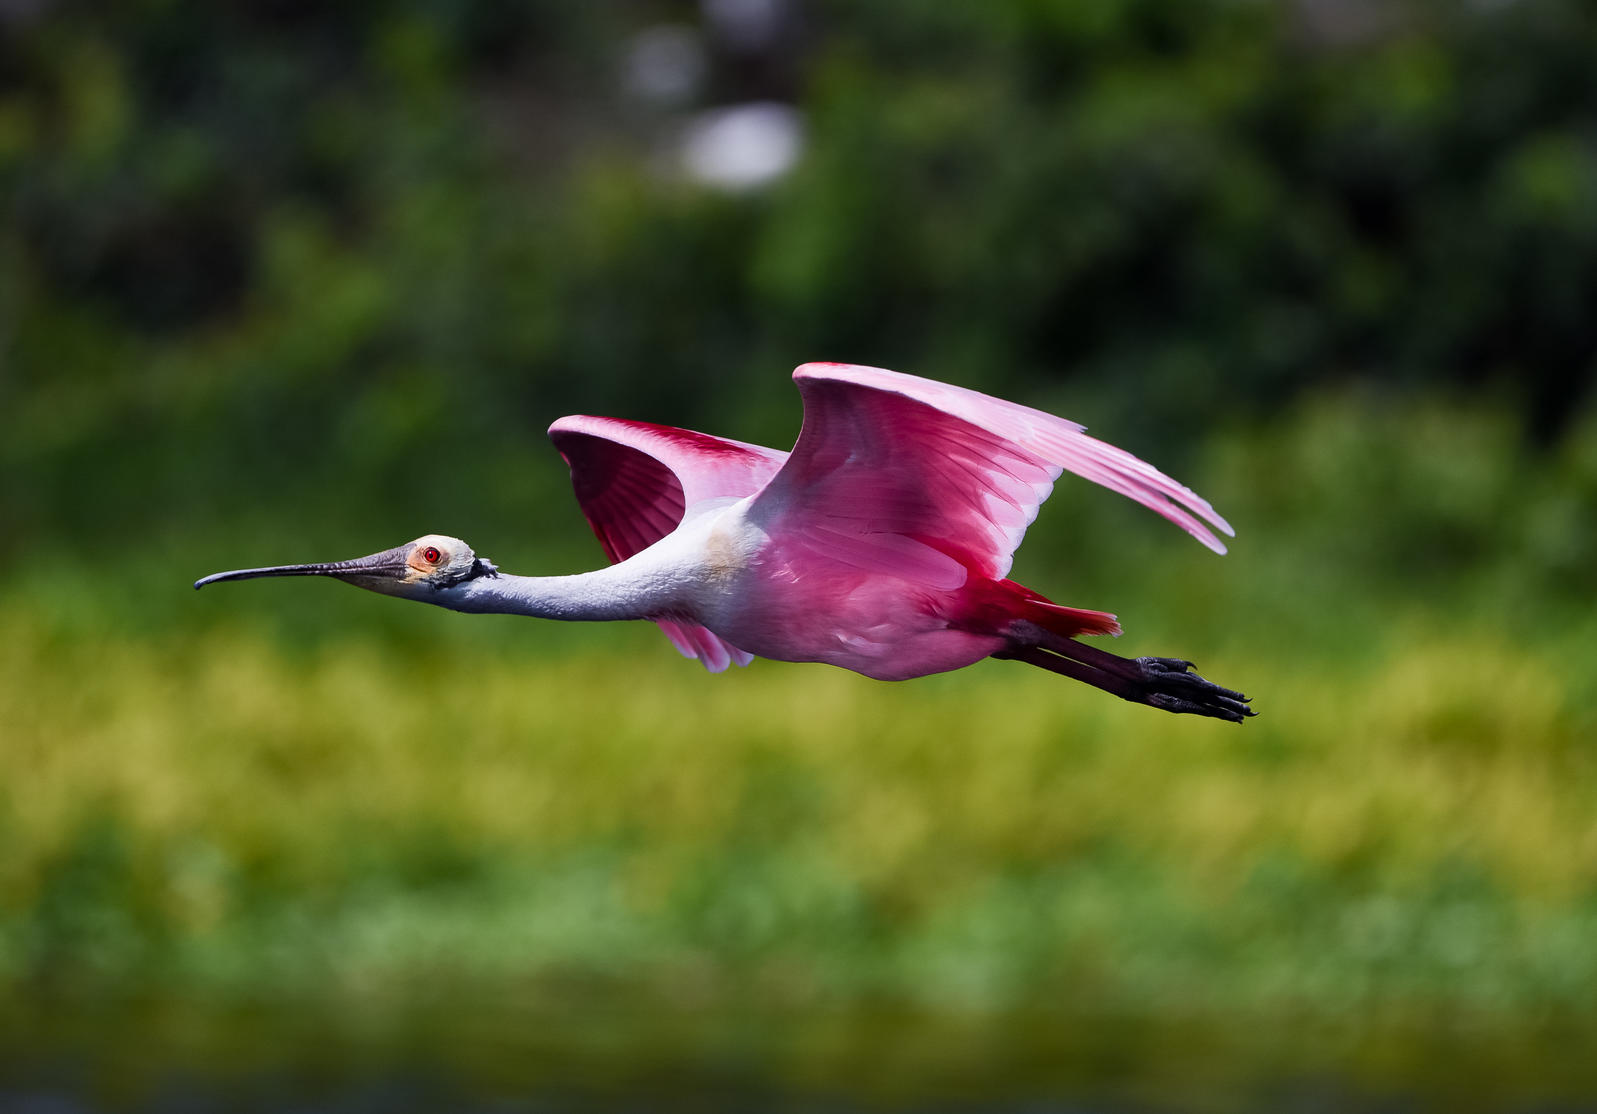 Roseate Spoonbill in flight over water. LWCF has protected Important Birds Areas and helped to restore the Everglades for the Roseate Spoonbill. Robert Cook/Audubon Photography Awards